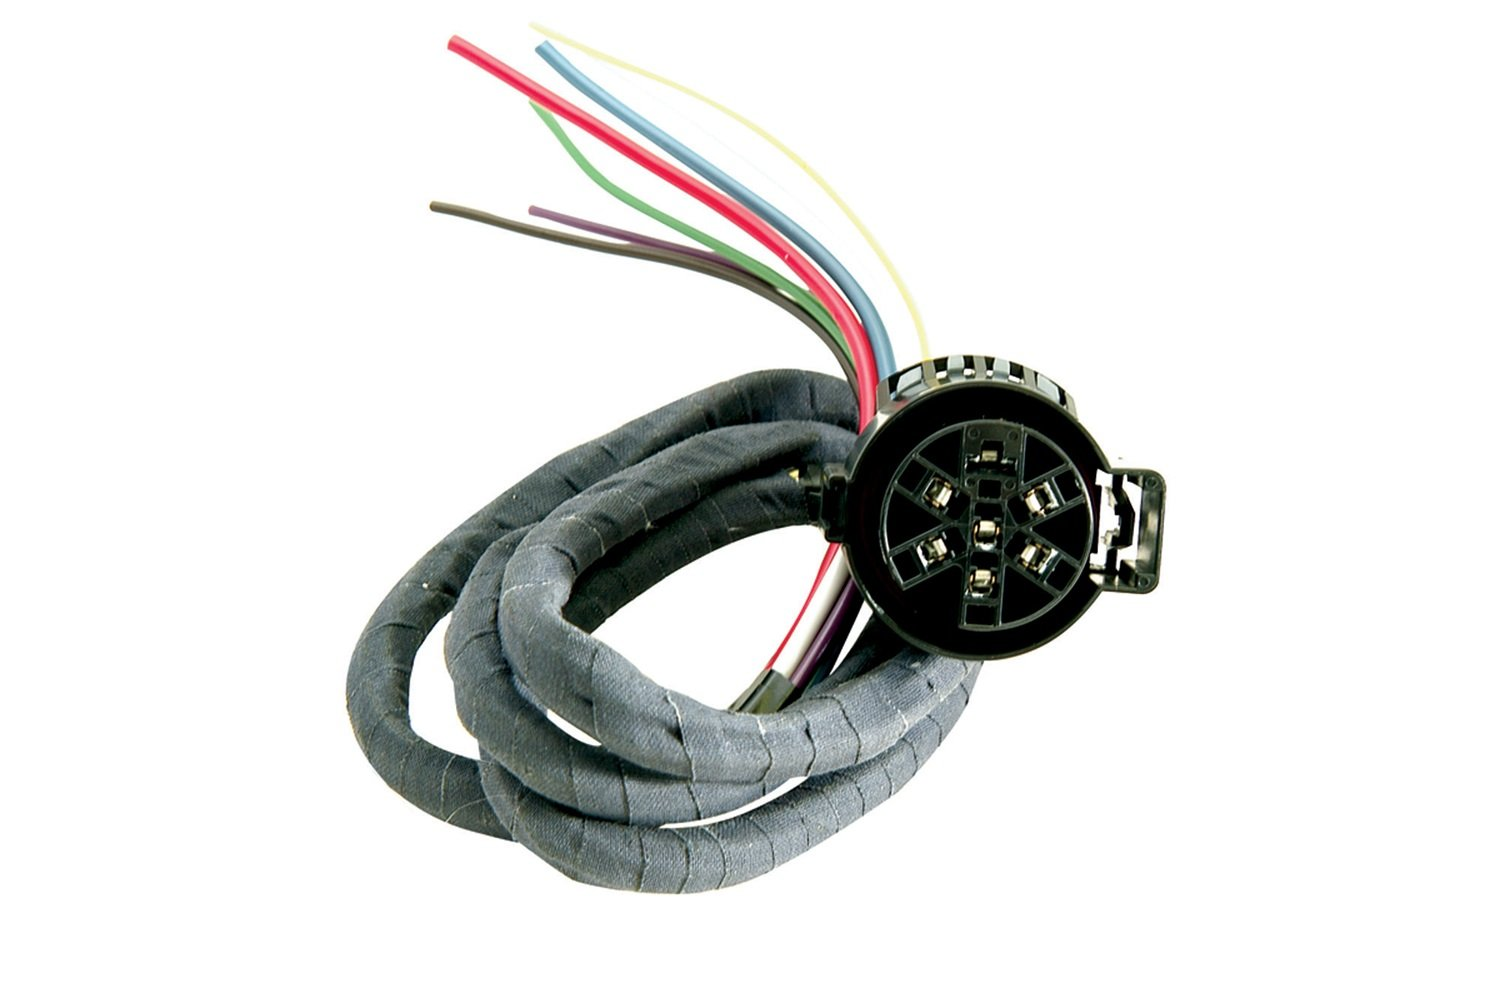 619JgDjQ1WL._SL1500_ amazon com hopkins 40985 universal multi tow harness connector universal wiring harness connector at couponss.co